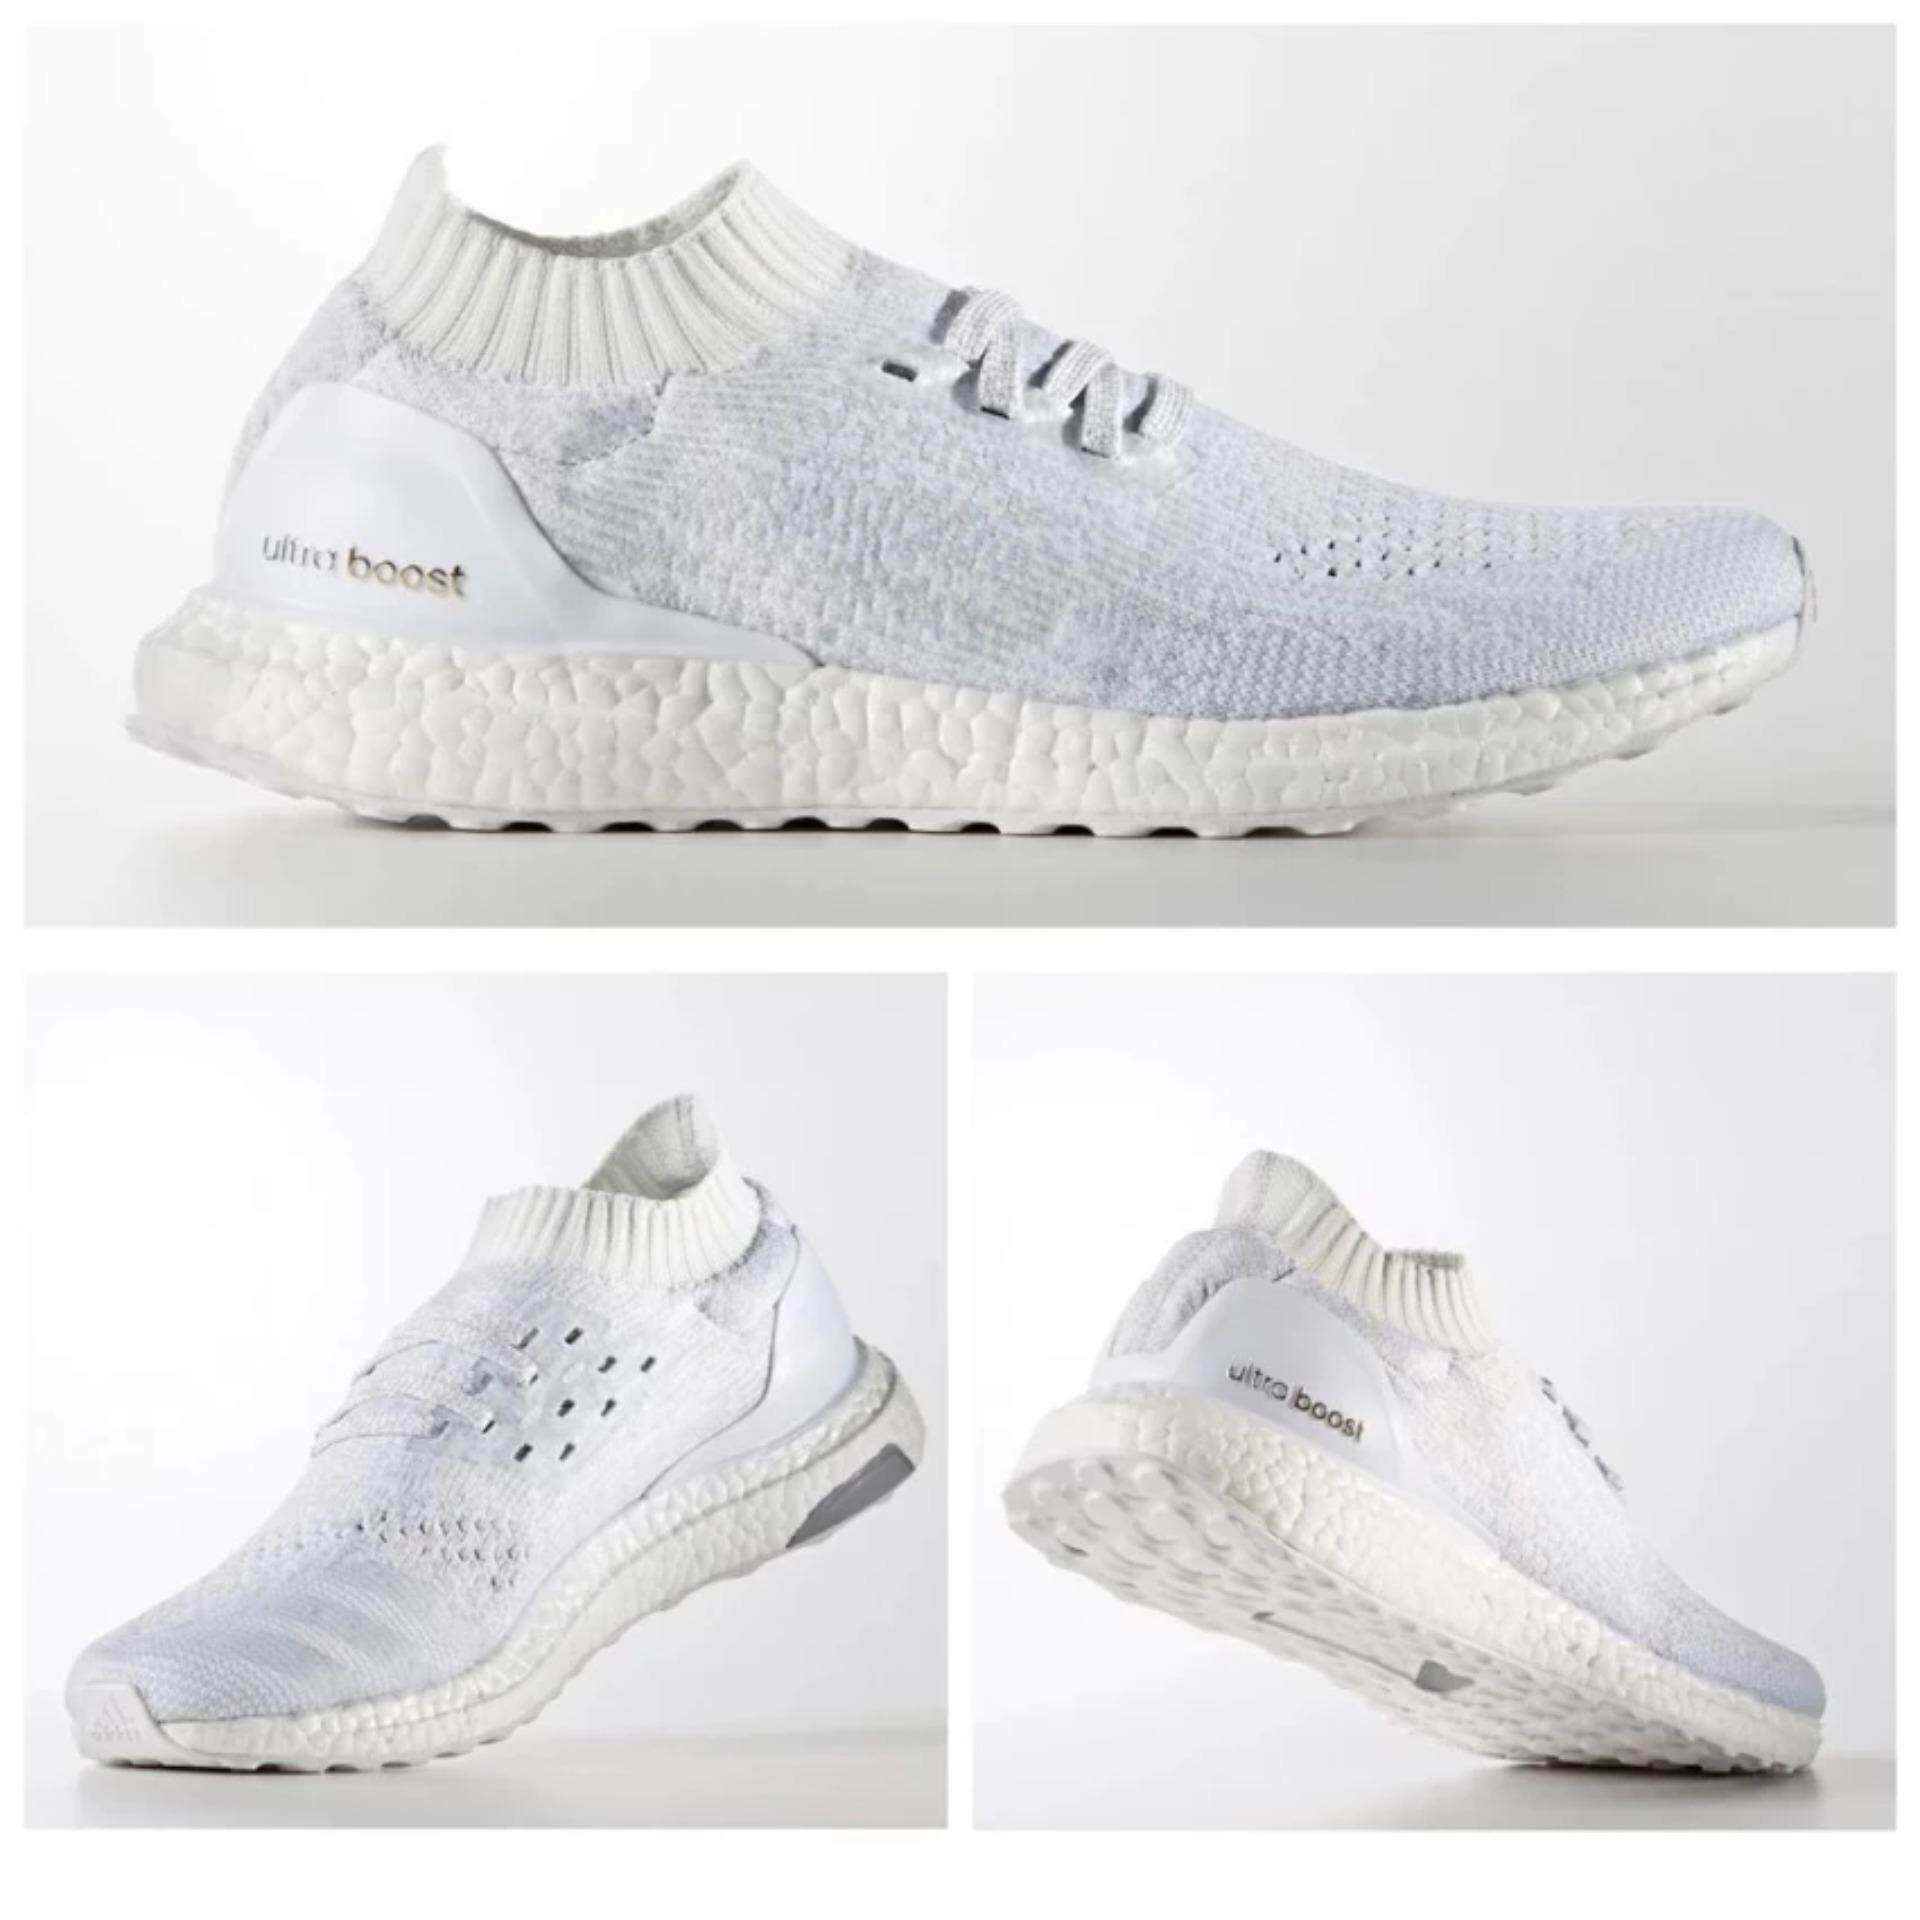 check out c440c e53e0 รองเท้า ADIDAS ultraBOOST Uncaged LIMITED Tripple White ...